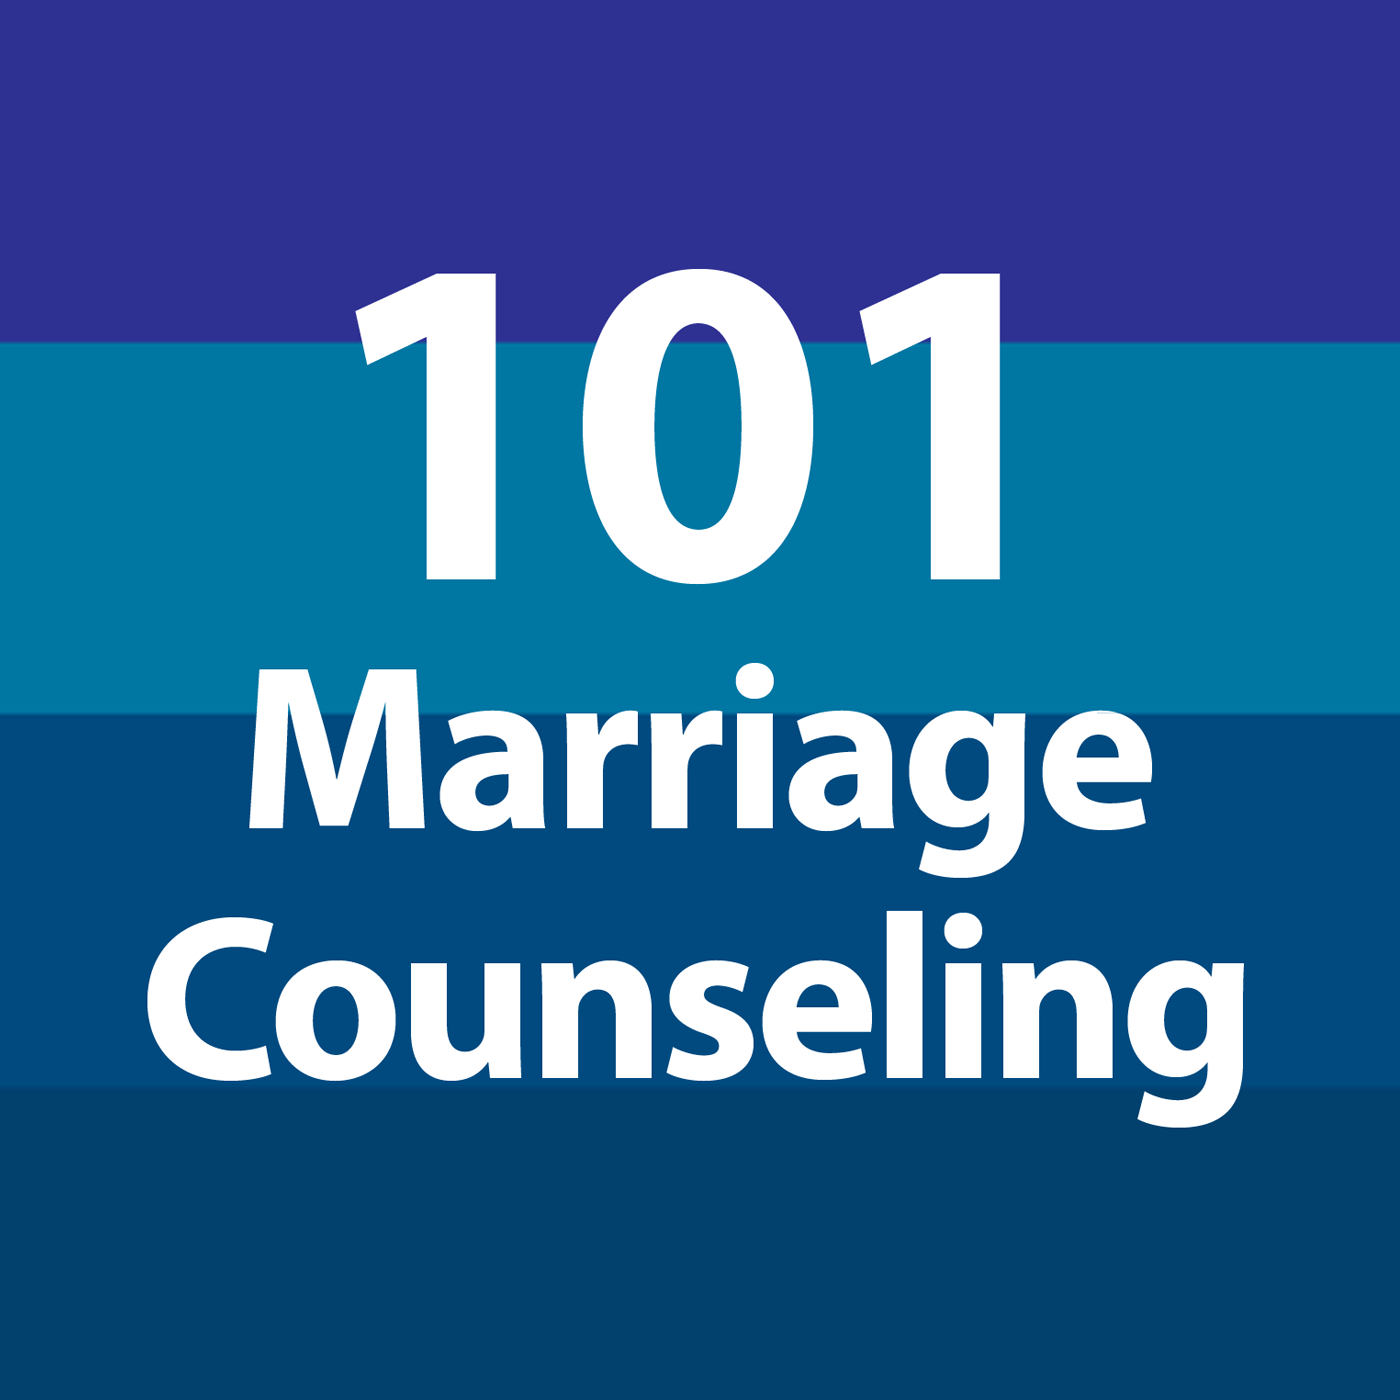 marriagecounseling's podcast